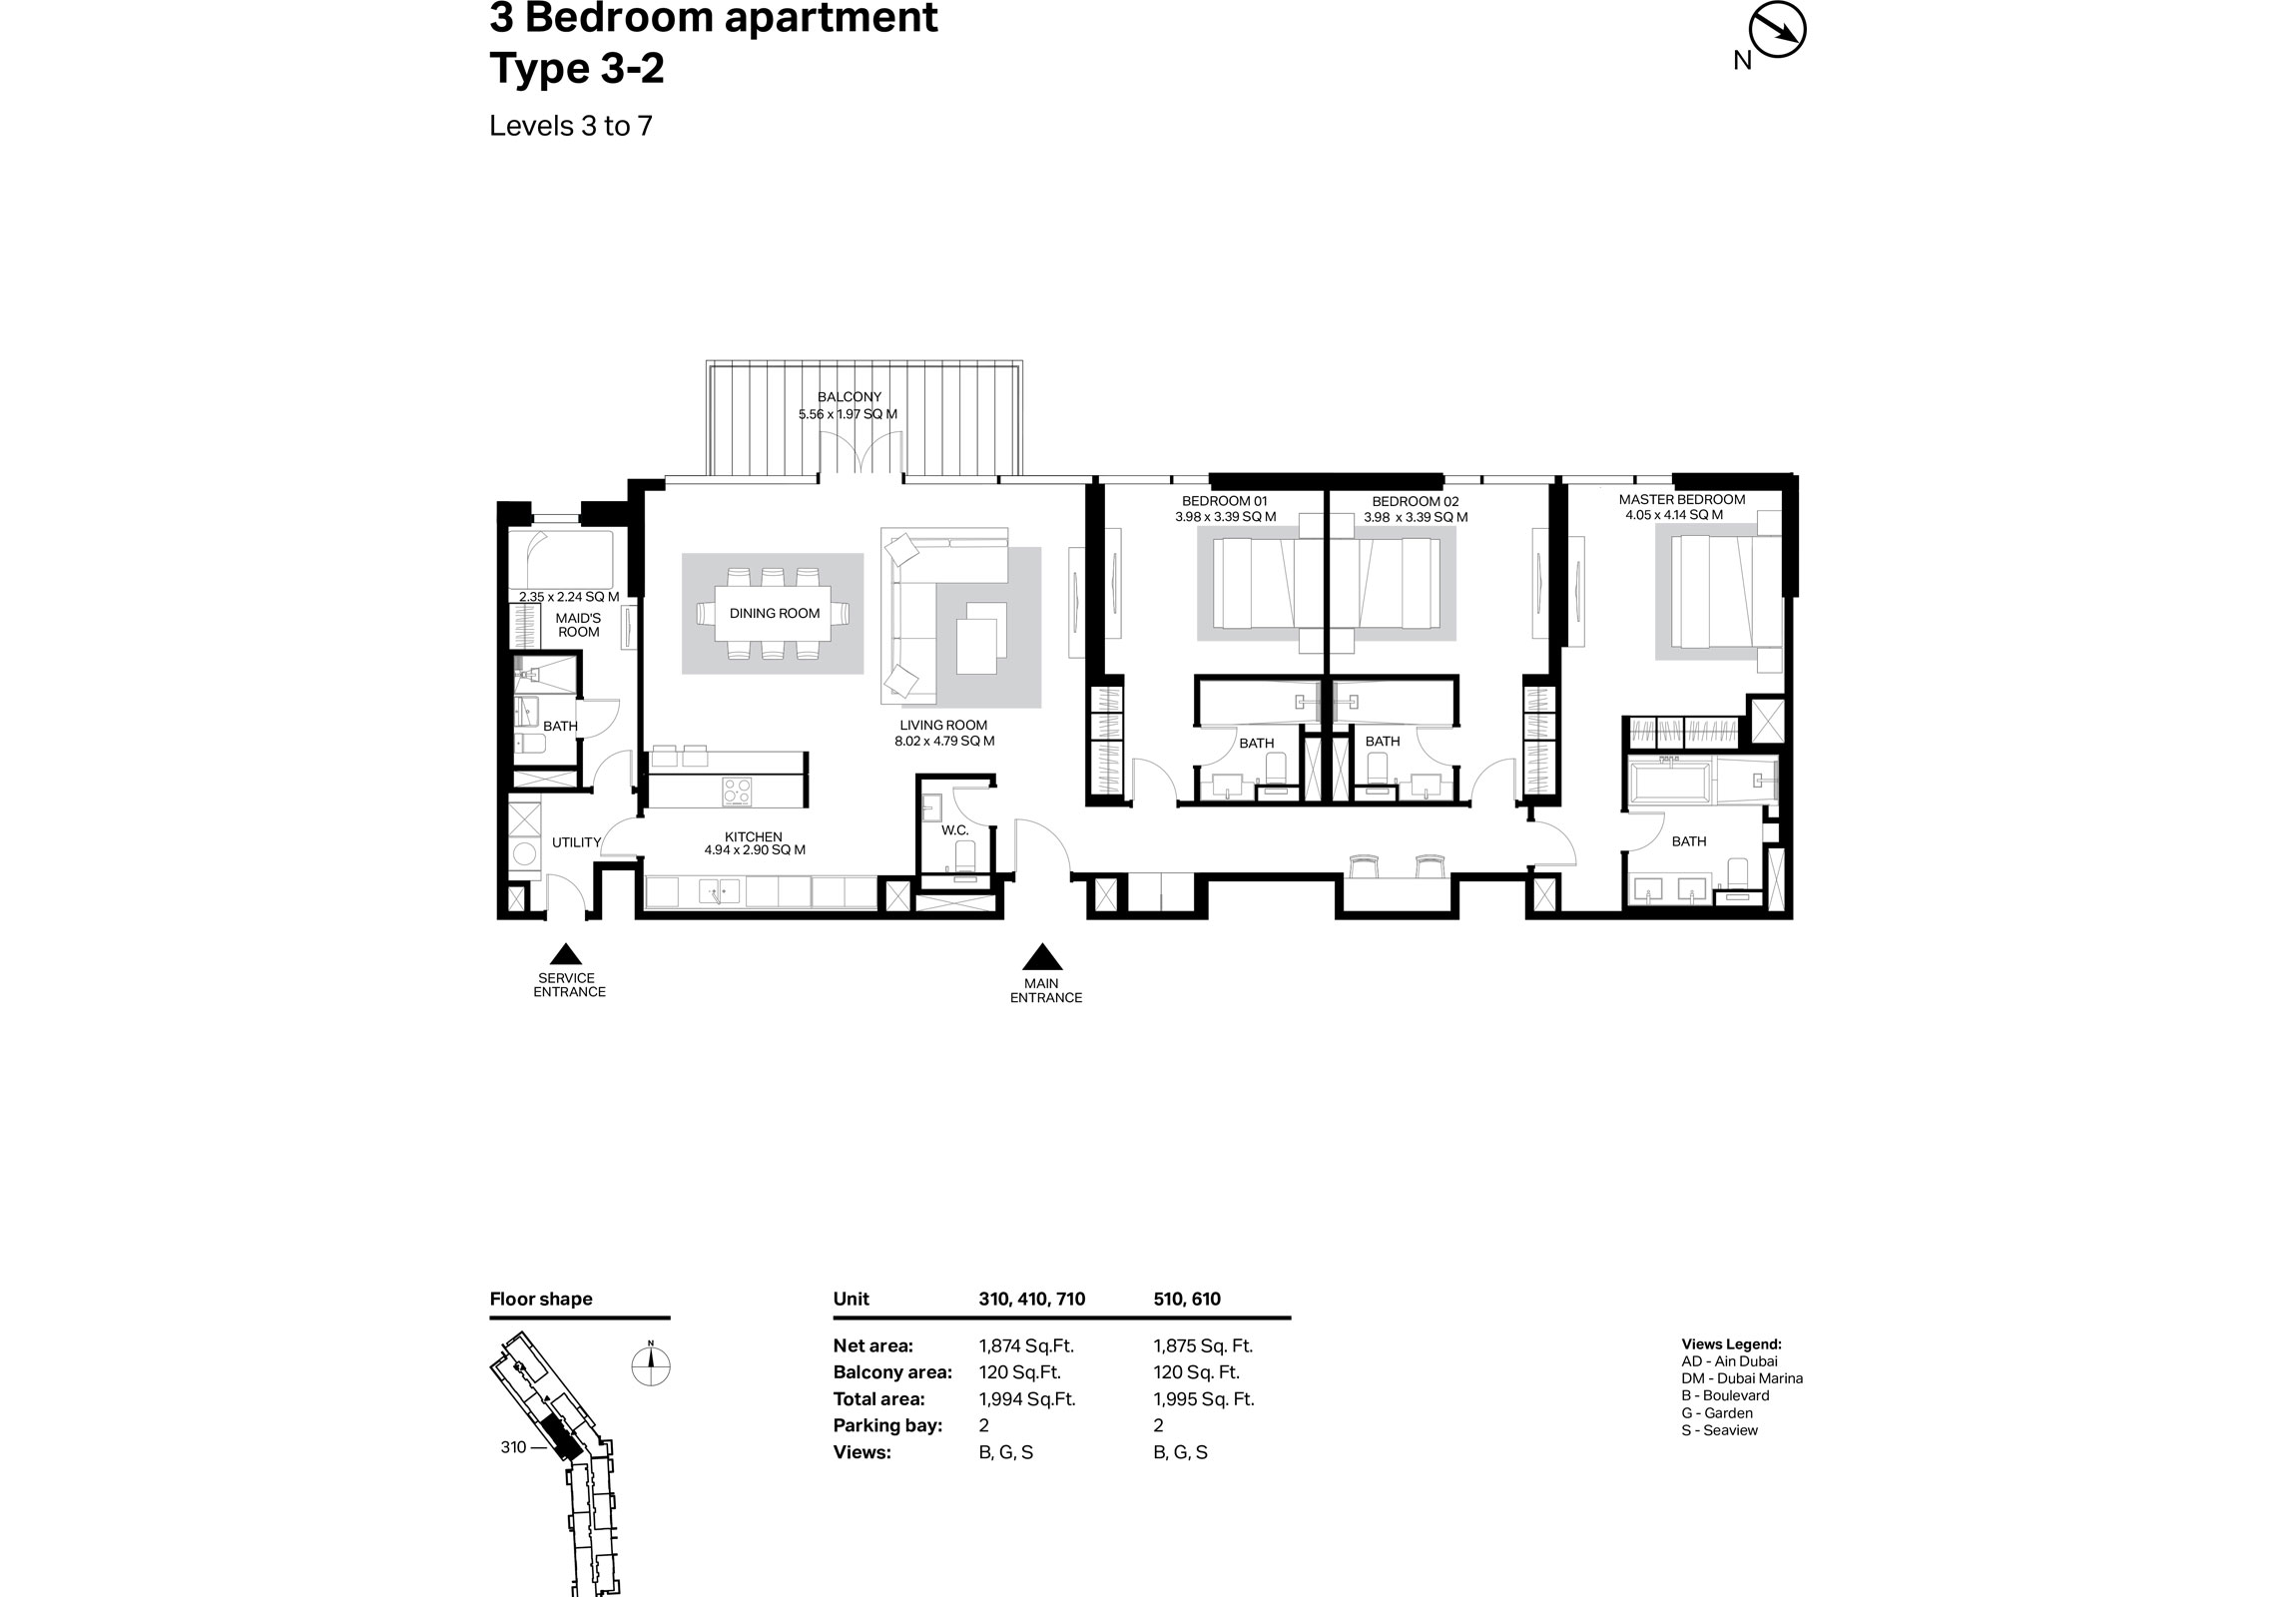 Building 2 - 3 Bedroom Type 3-2 Level 3 To 7 Size 1995    sq. ft.